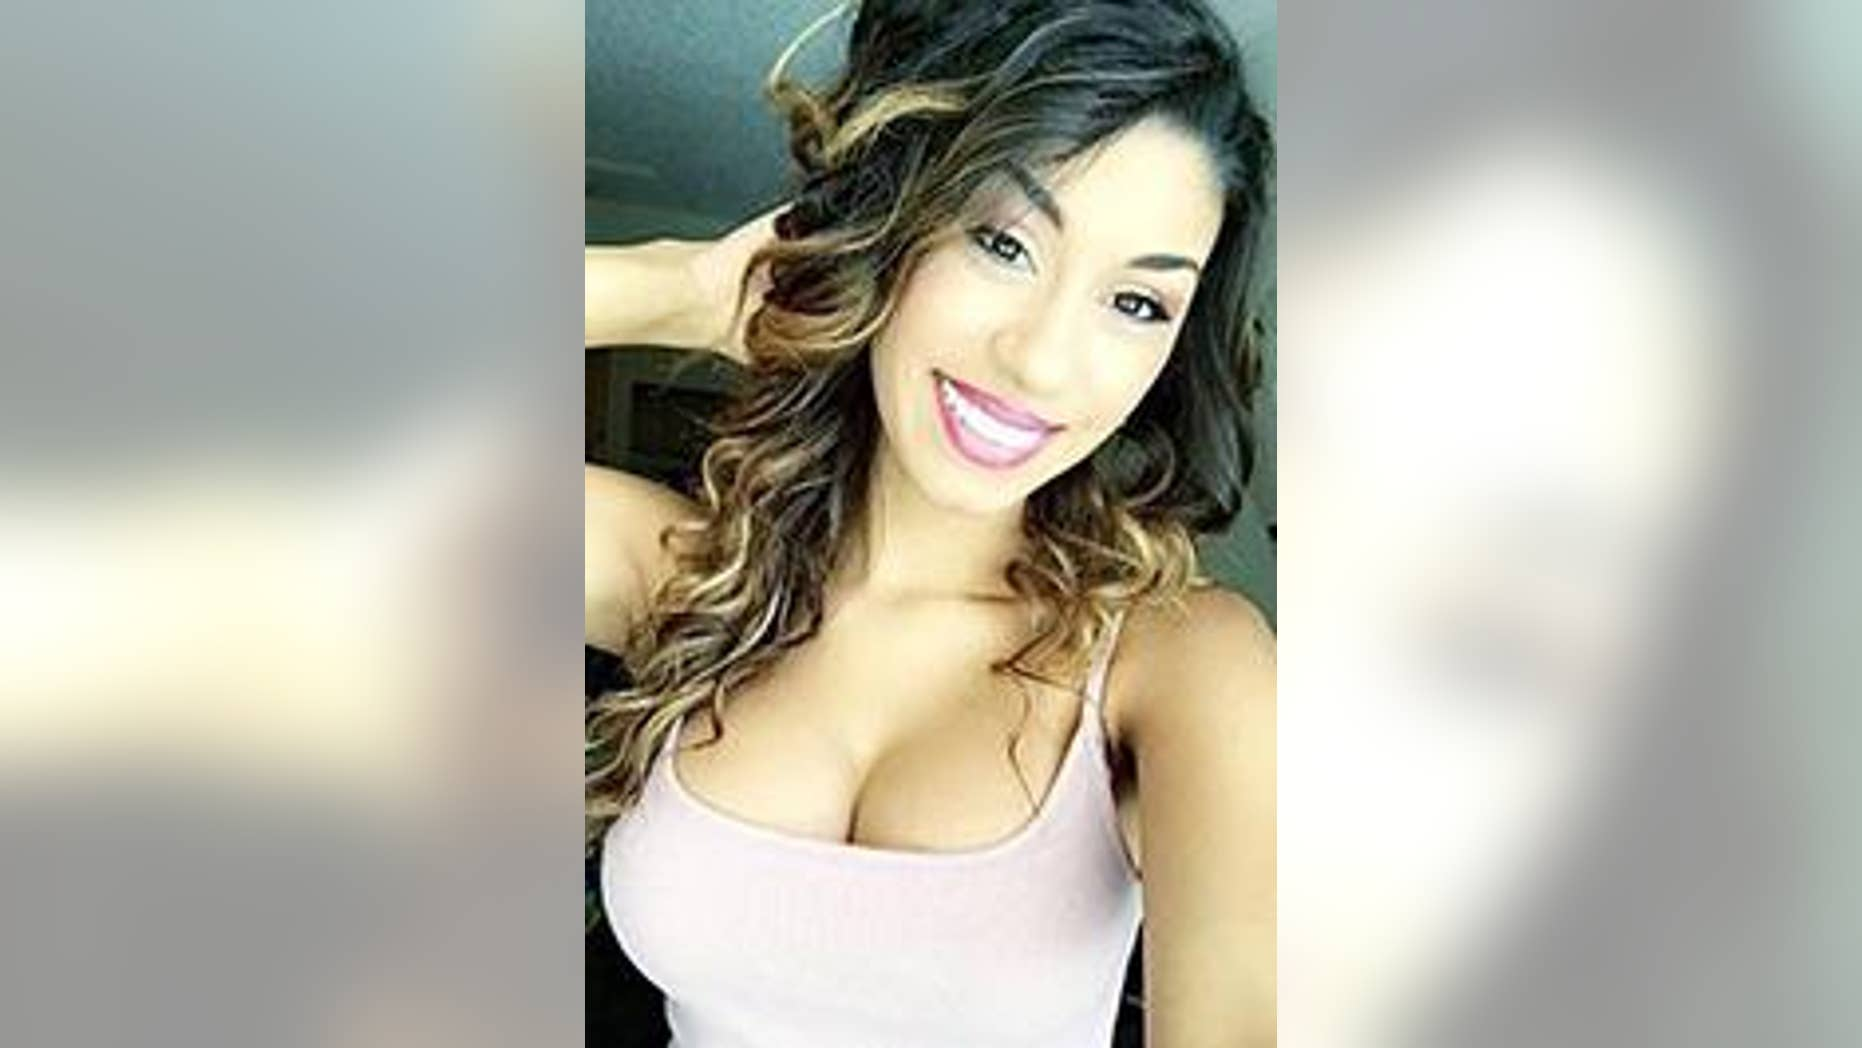 Westlake Legal Group breyanna175 Florida woman accused of sending pics of male's genitals over social media: report fox-news/us/us-regions/southeast/florida fox-news/us/crime/sex-crimes fox-news/us/crime fox news fnc/us fnc df3a4c3b-d109-56ae-82c1-7f3a6e611076 Danielle Wallace article